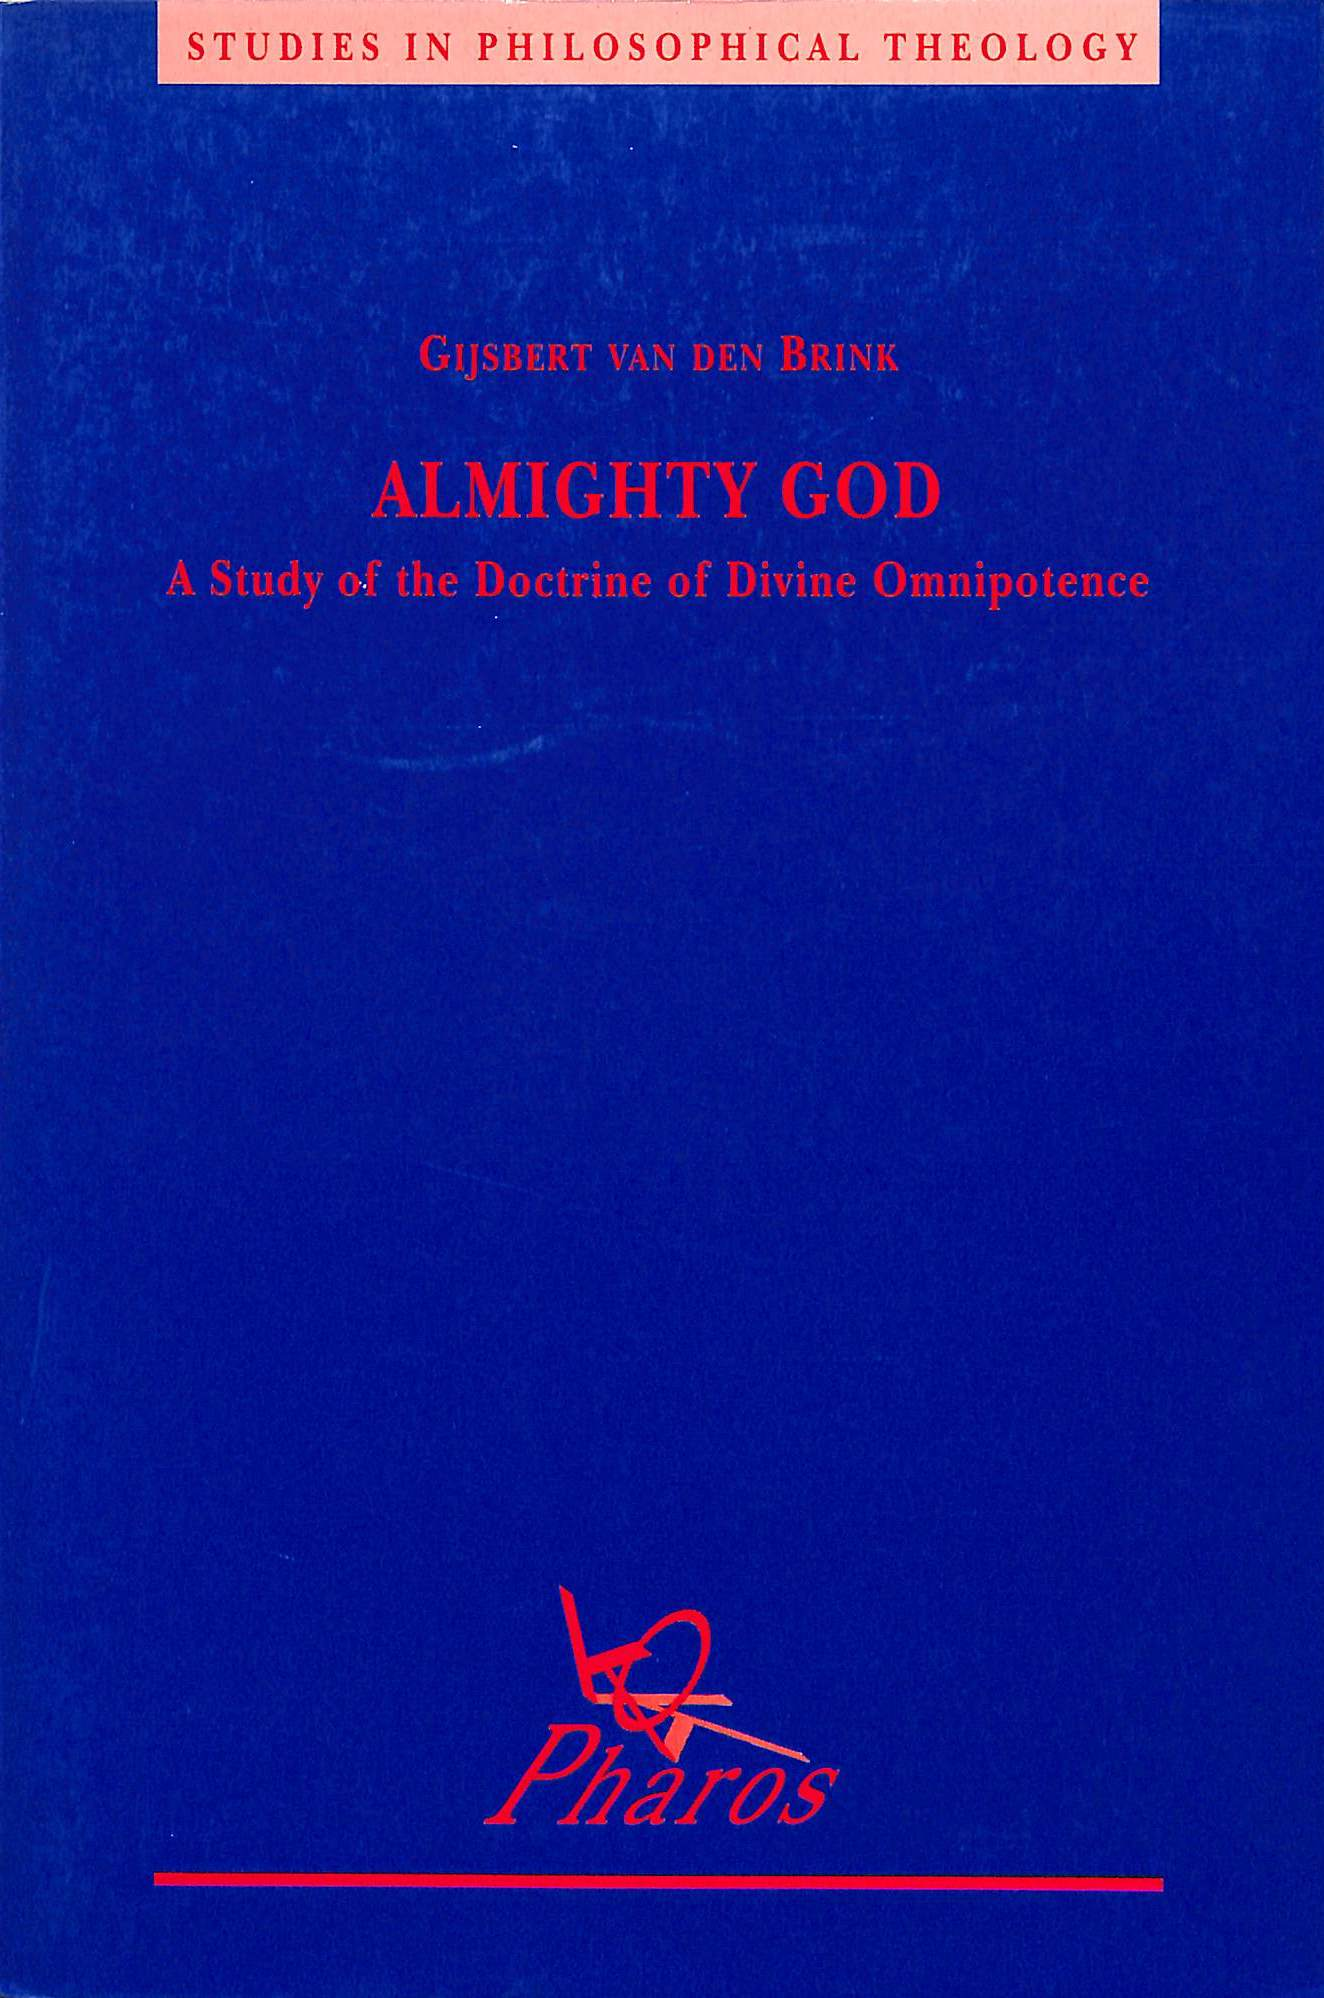 Almighty God (2e hands)